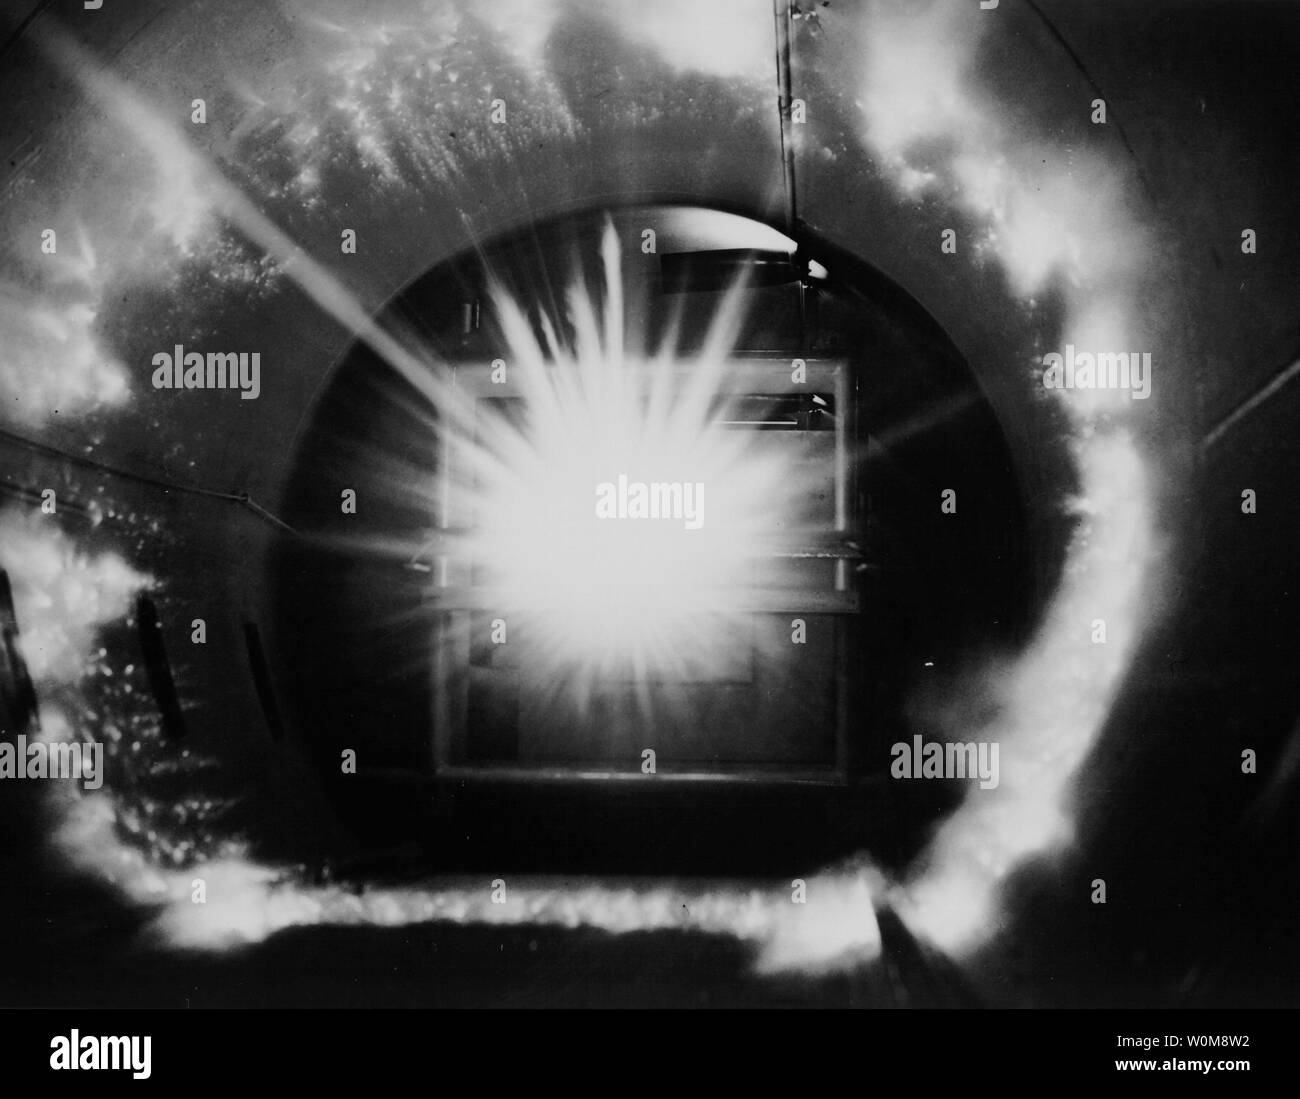 The photo, taken on Jan. 1, 1963, shows the 'energy flash' that occurs when a projectile launched at speeds up to 17,000 miles an hour impacts a solid surface at the Hypervelocity Ballistic Range at NASA's Ames Research Center. This test was used to simulate what happens when a piece of orbital debris hits a spacecraft in orbit. (UPI Photo/NASA) - Stock Image